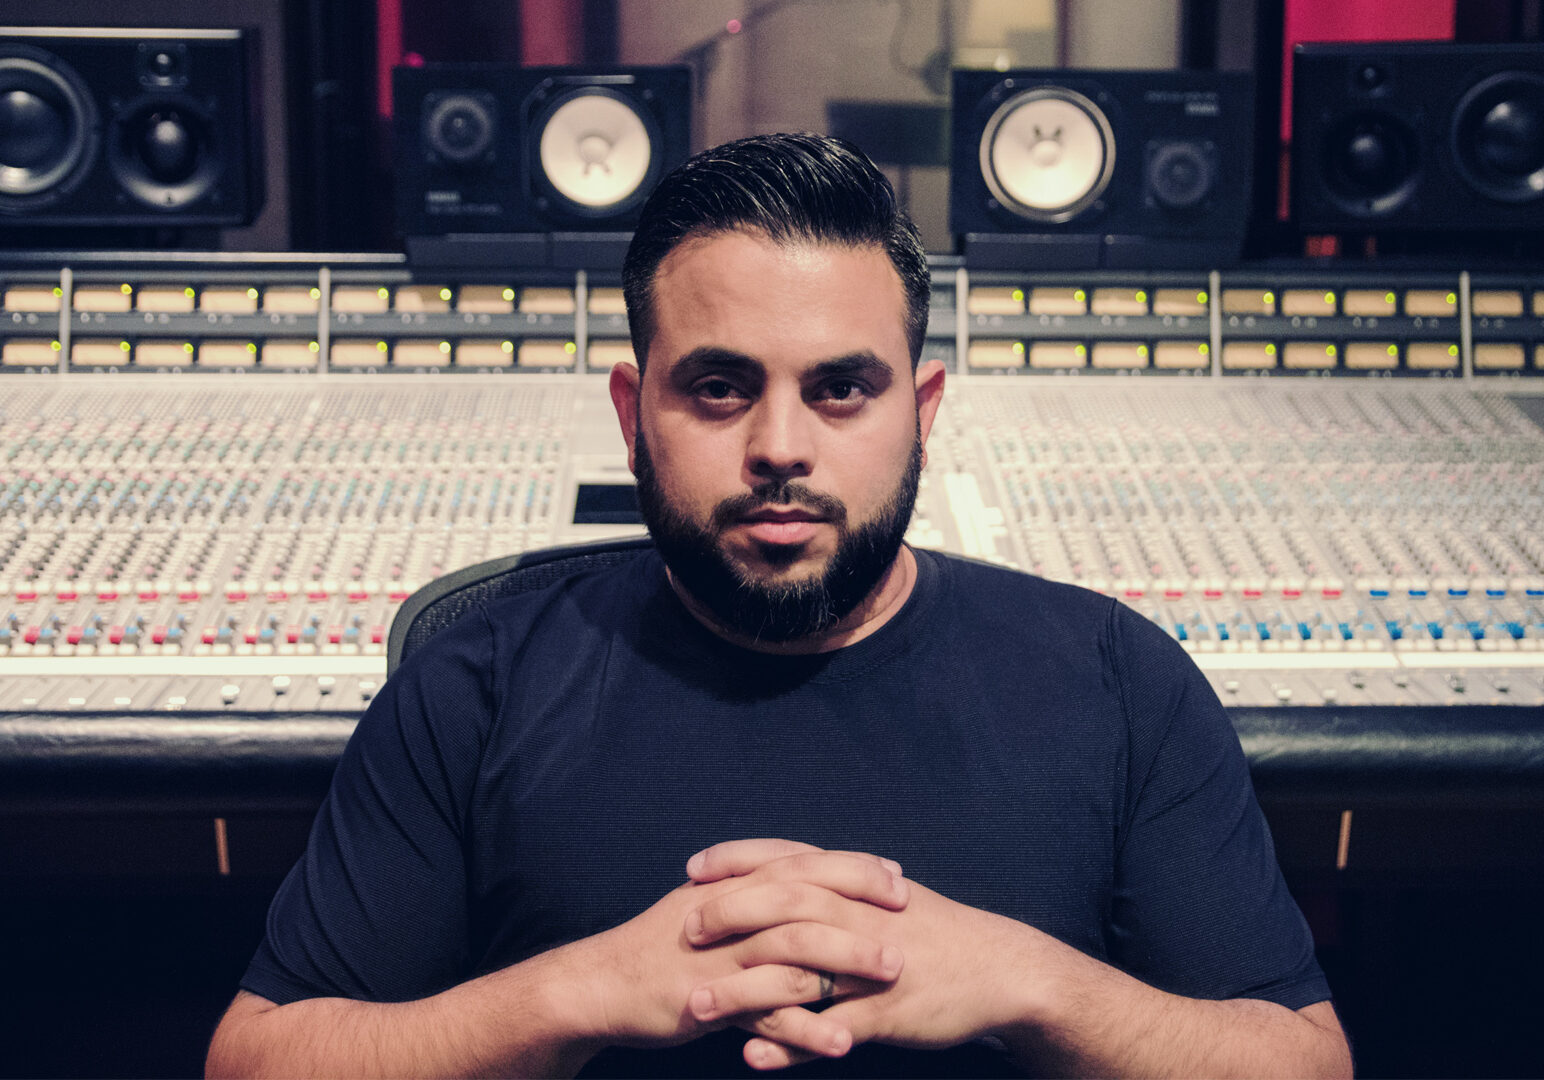 los-angeles-music-producers-shayan-amiri-sslconsole01